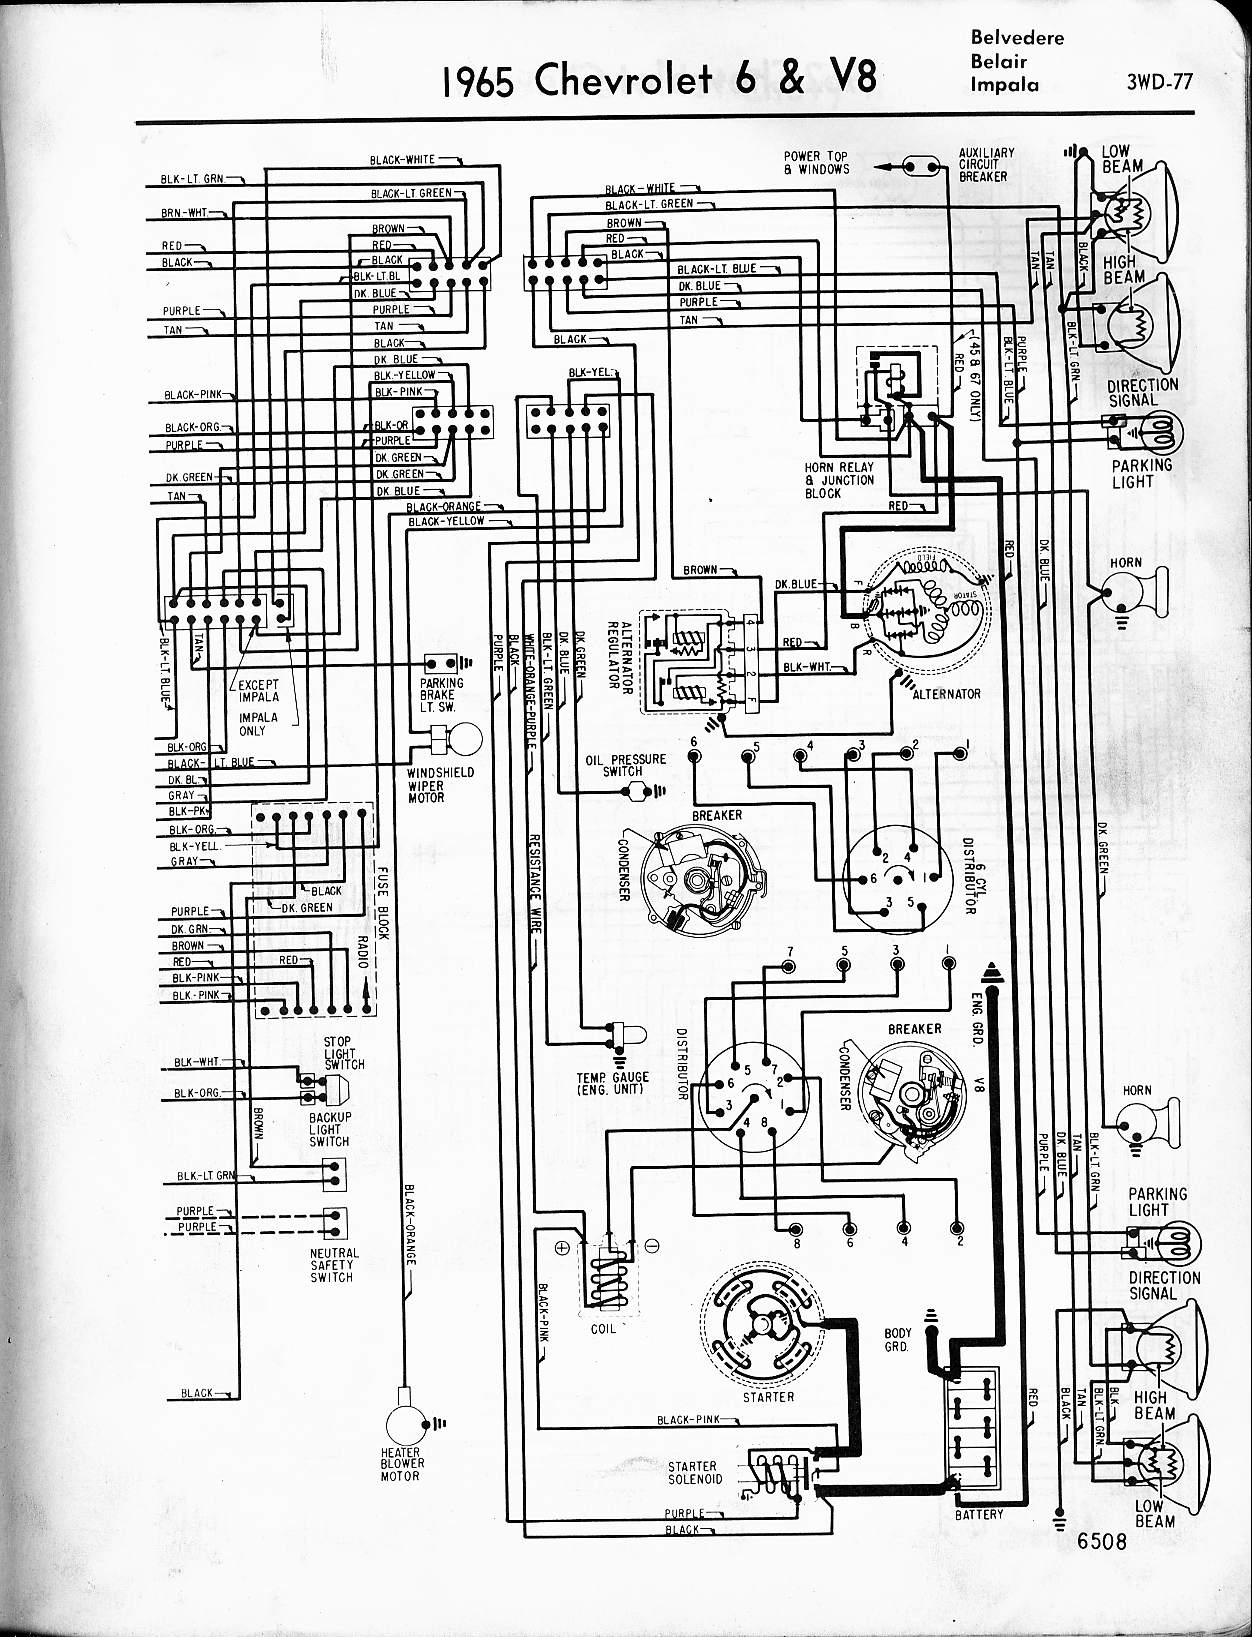 MWireChev65_3WD 077 chevy diagrams gm turn signal wiring diagram at soozxer.org